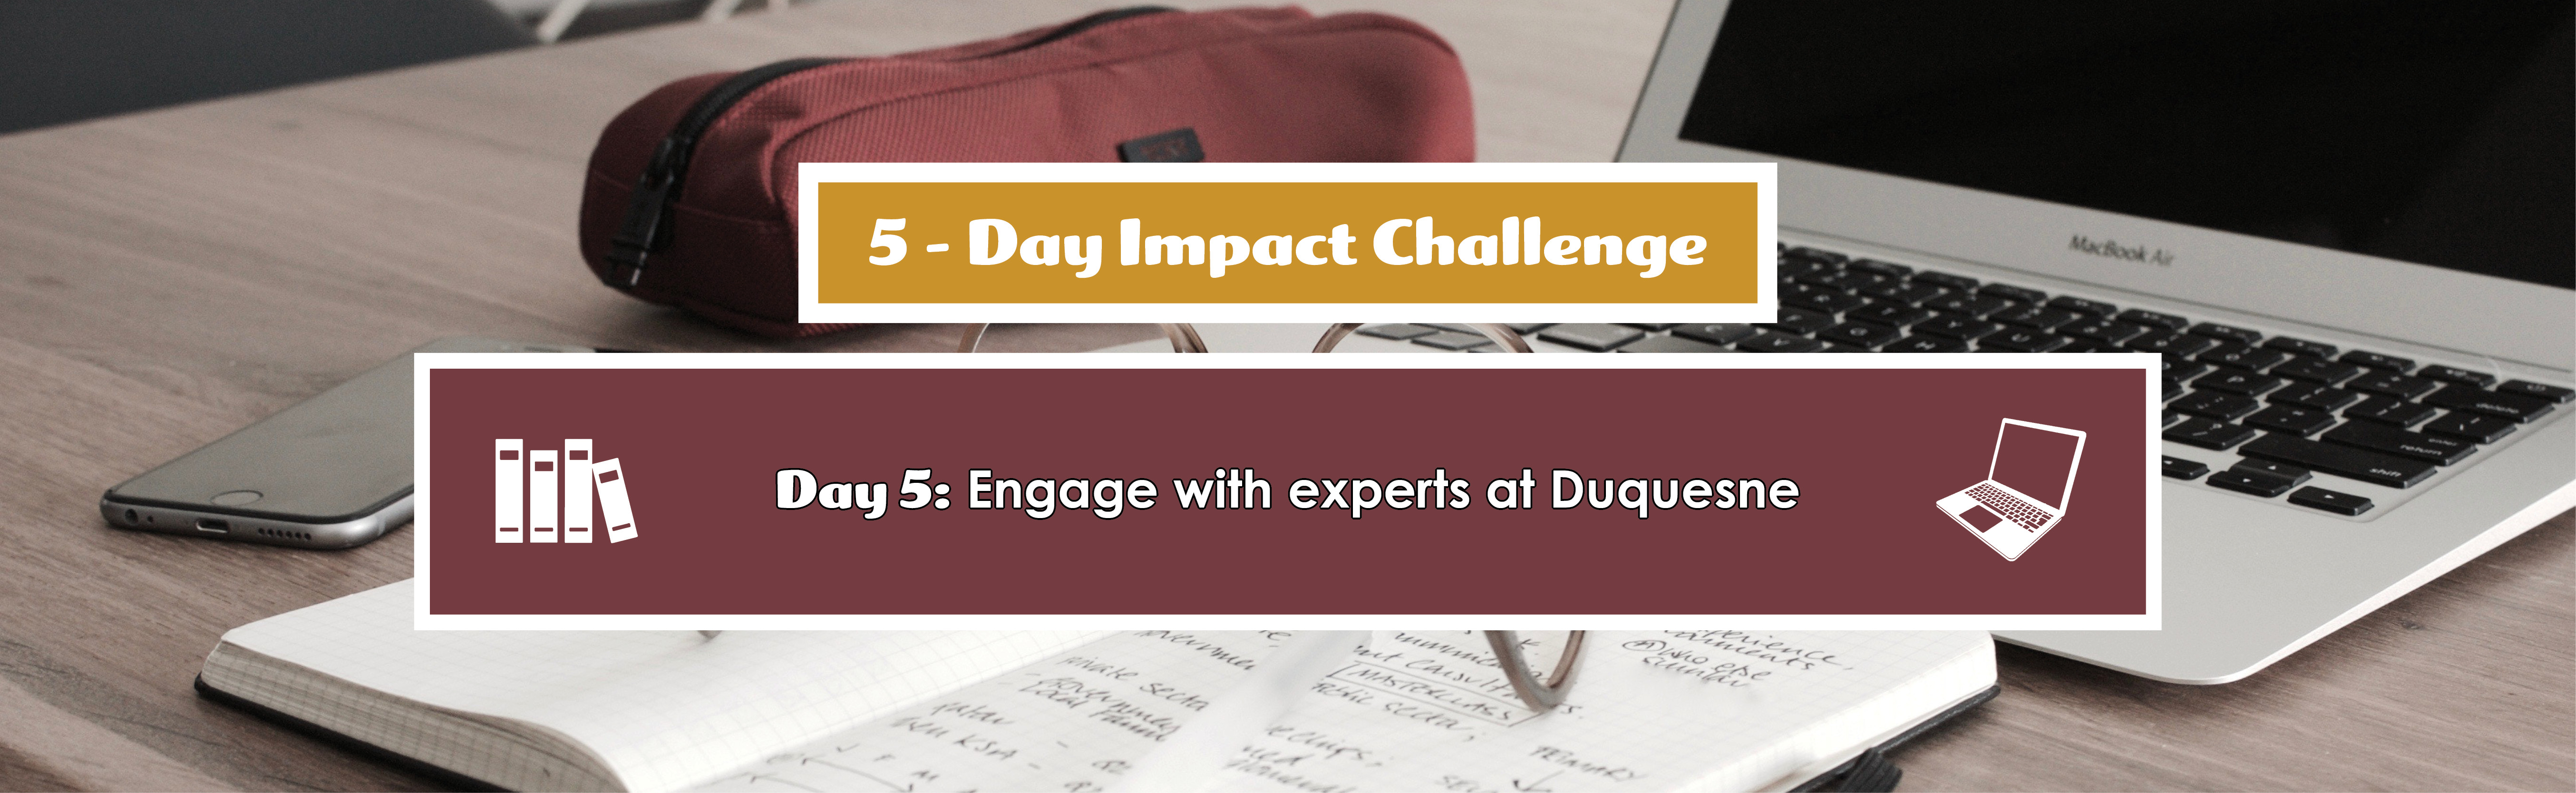 Banner reading 5-Day Impact Challenge Day 5: Engage with experts at Duquesne